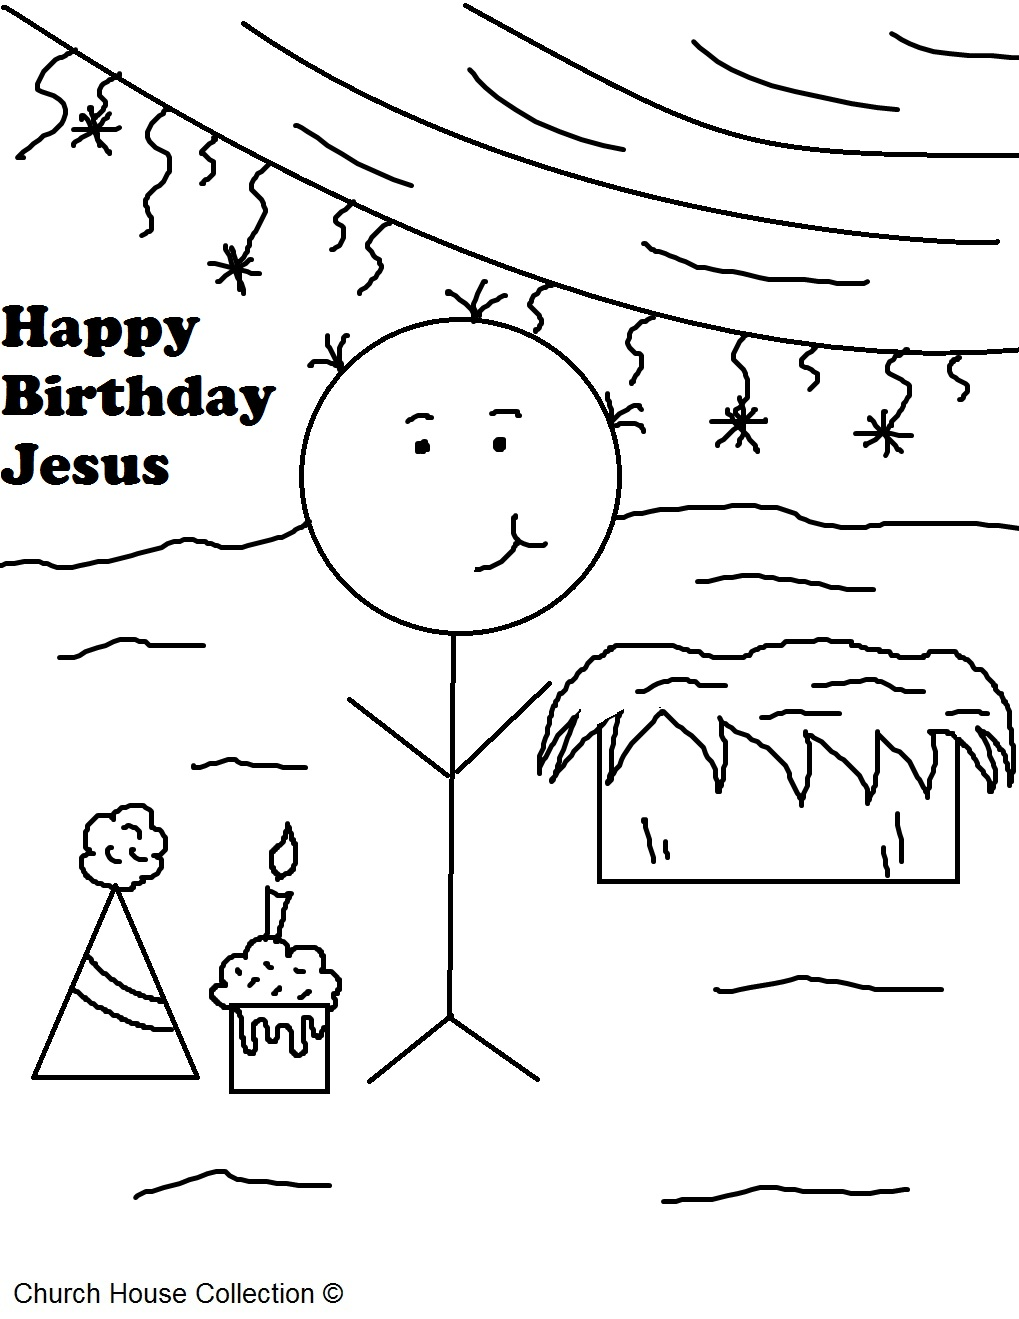 Happy birthday jesus coloring pages for Jesus birthday coloring pages